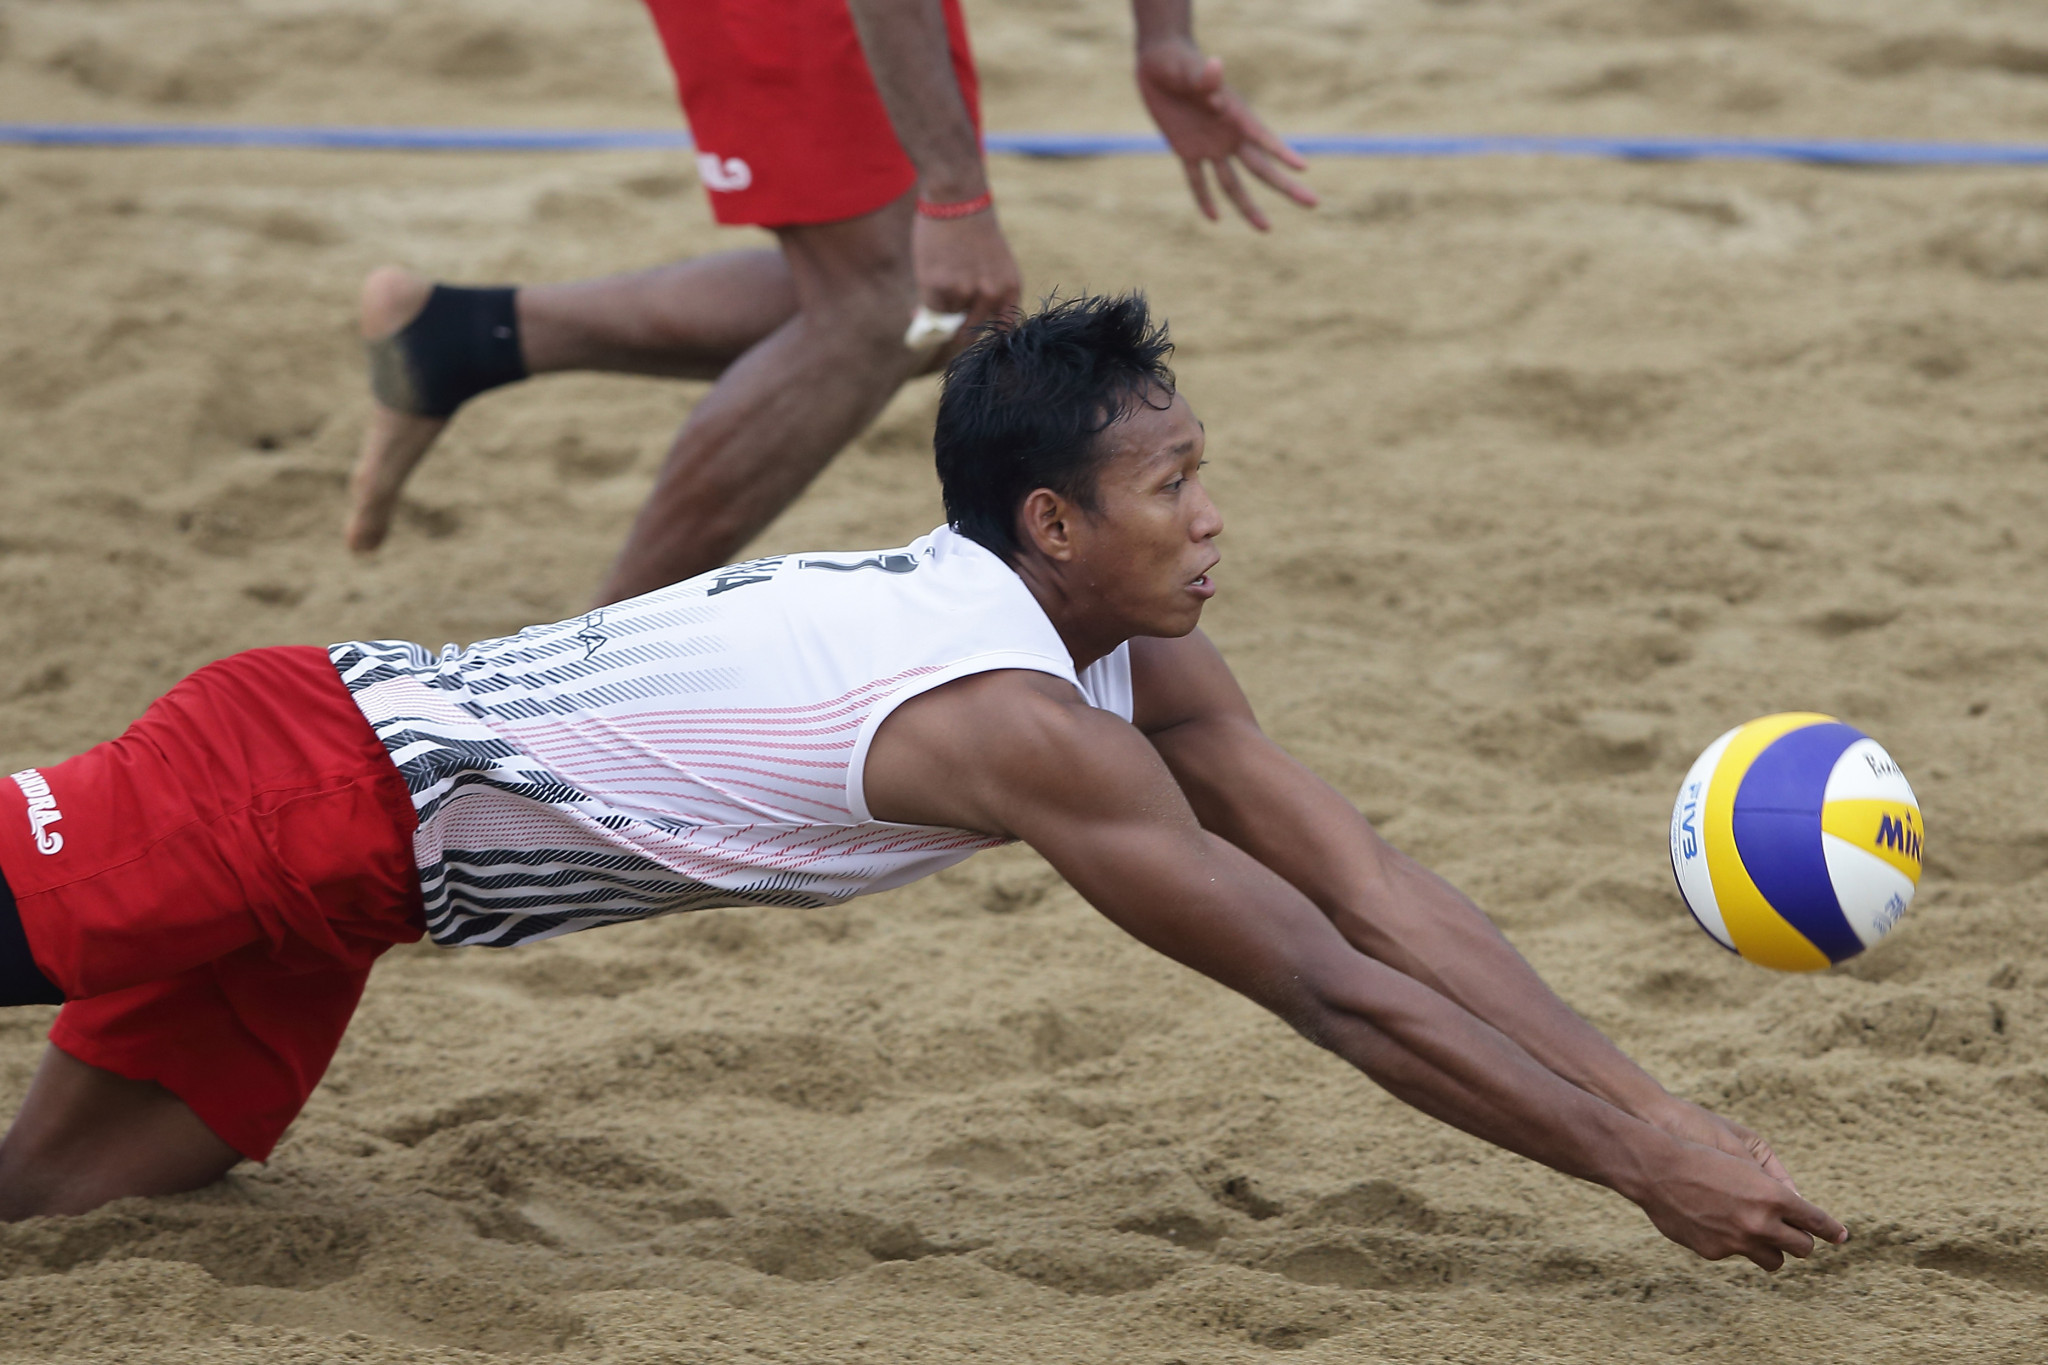 Palembang hosting beach volleyball test event as preparations continue for 2018 Asian Games